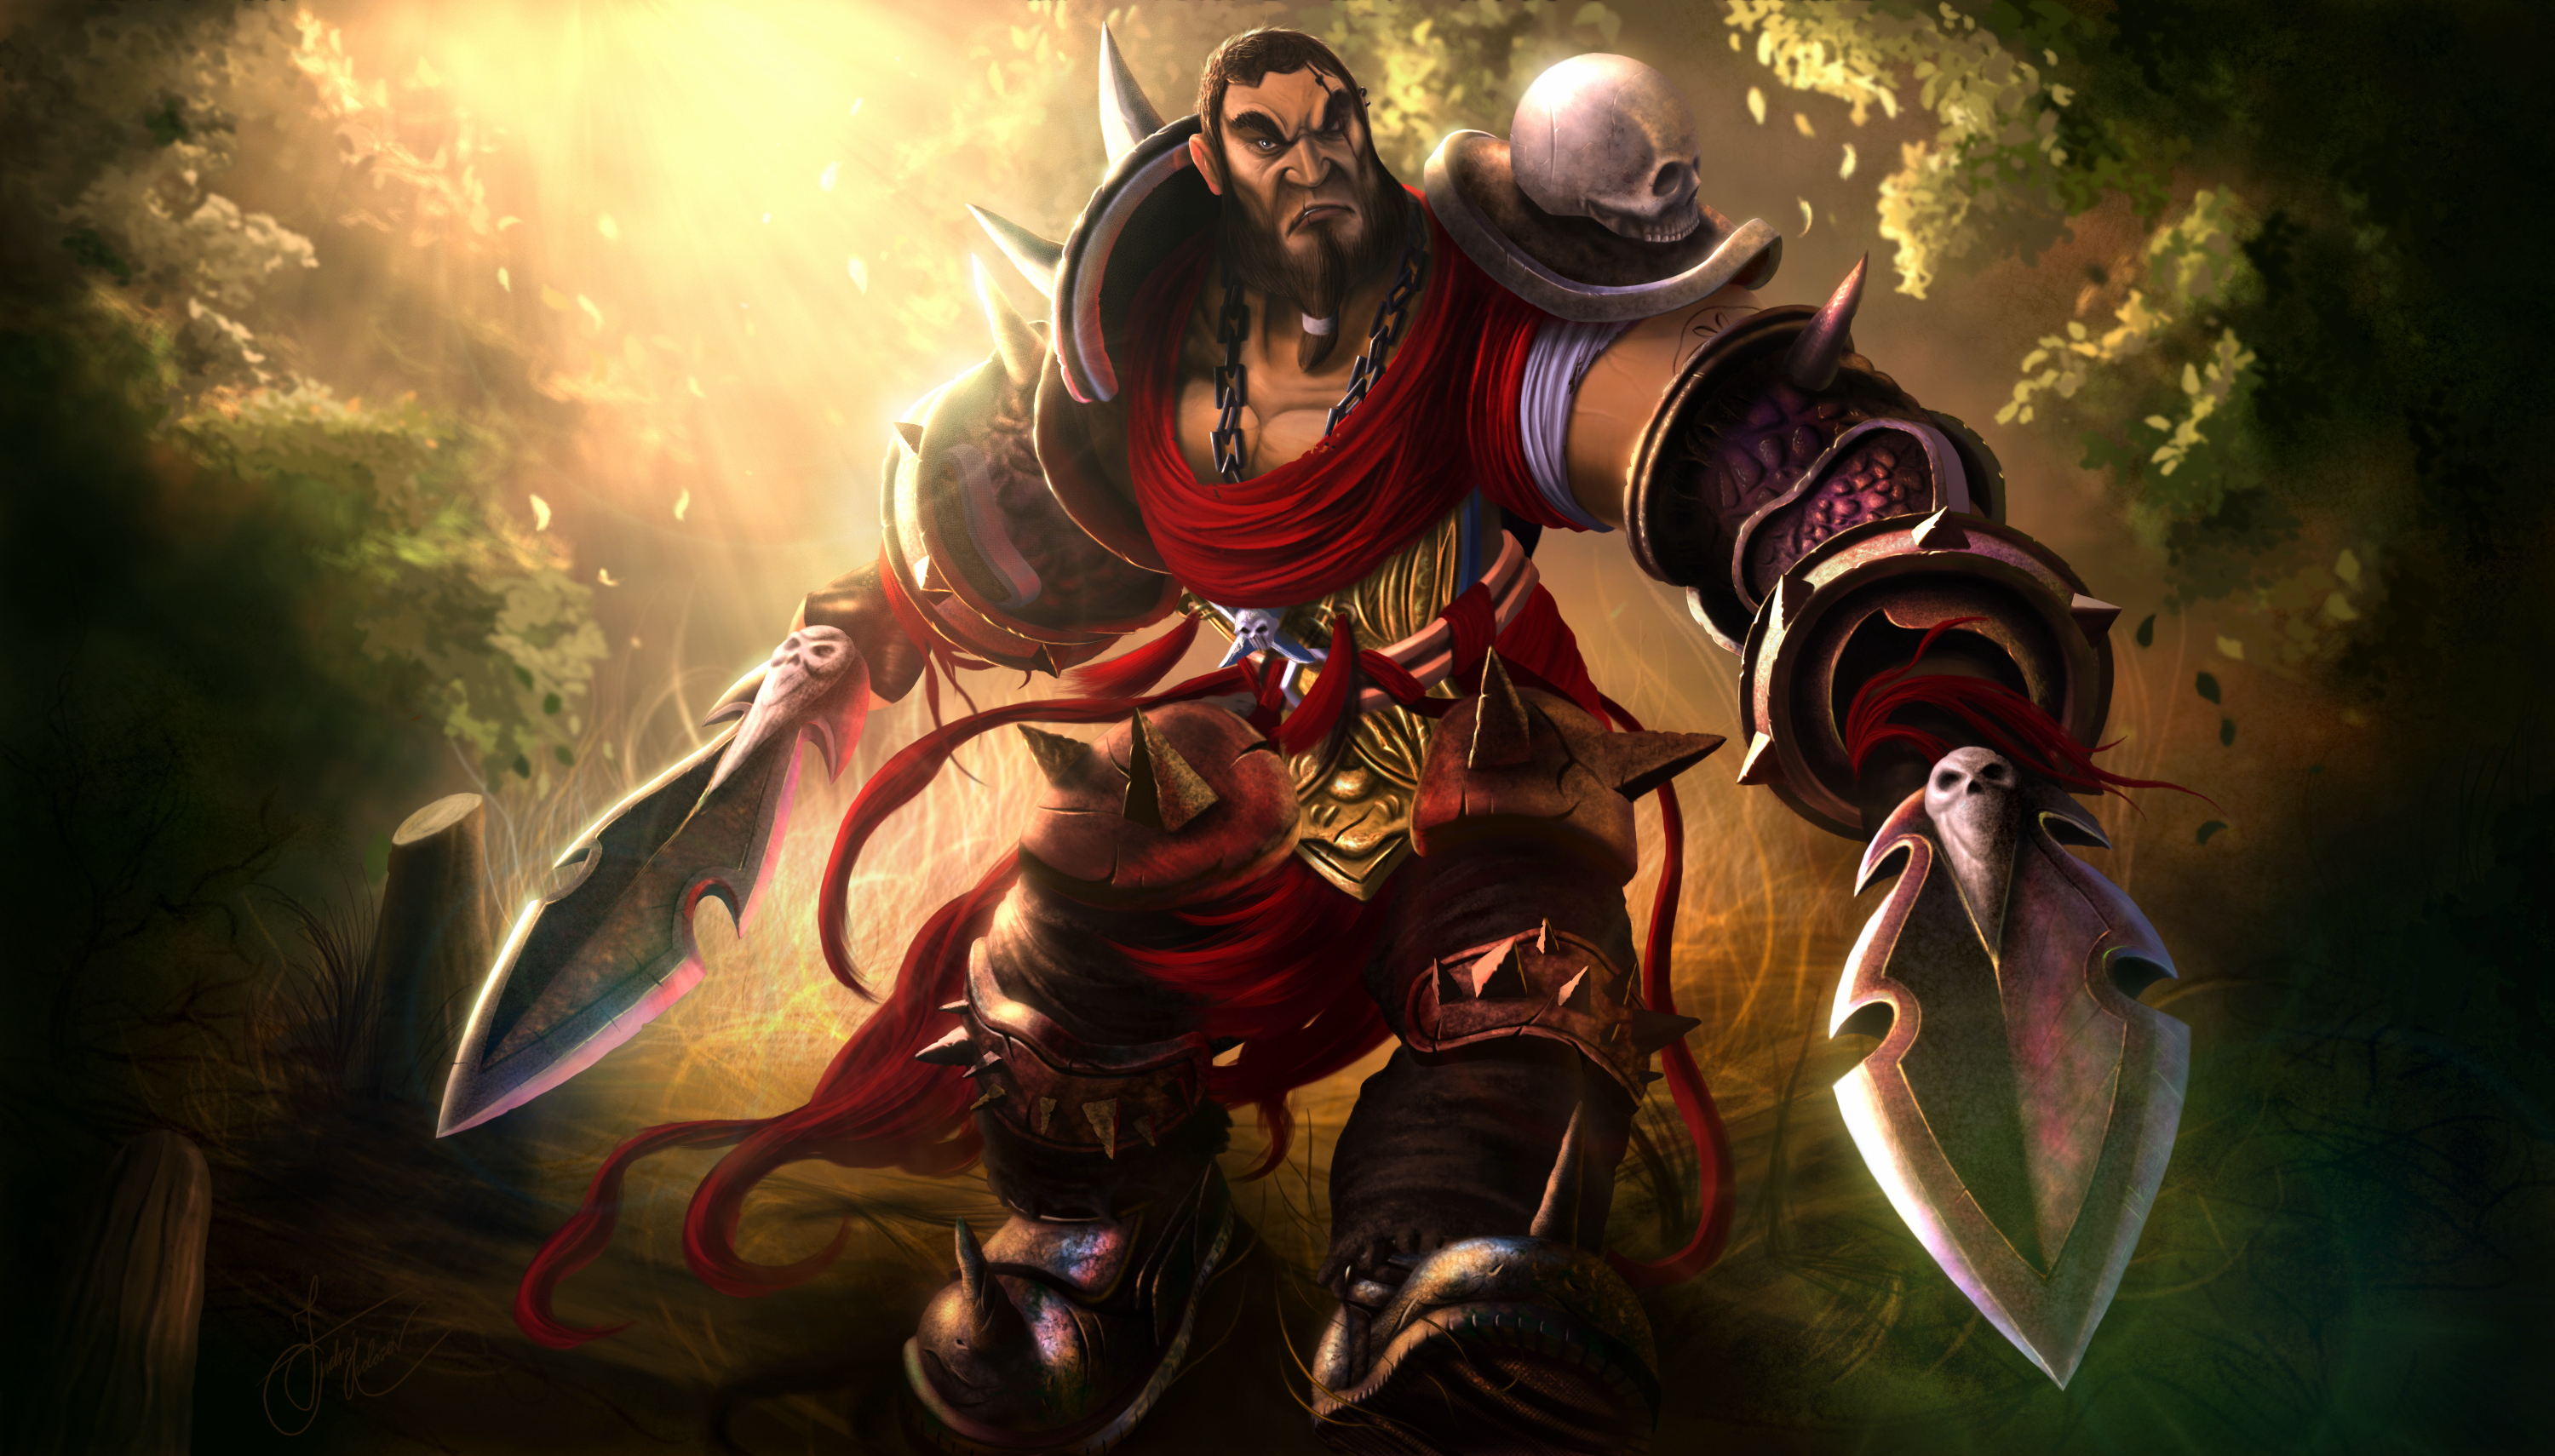 Picture Fable Swords Man Warriors The Lost Chapters 3000x1710